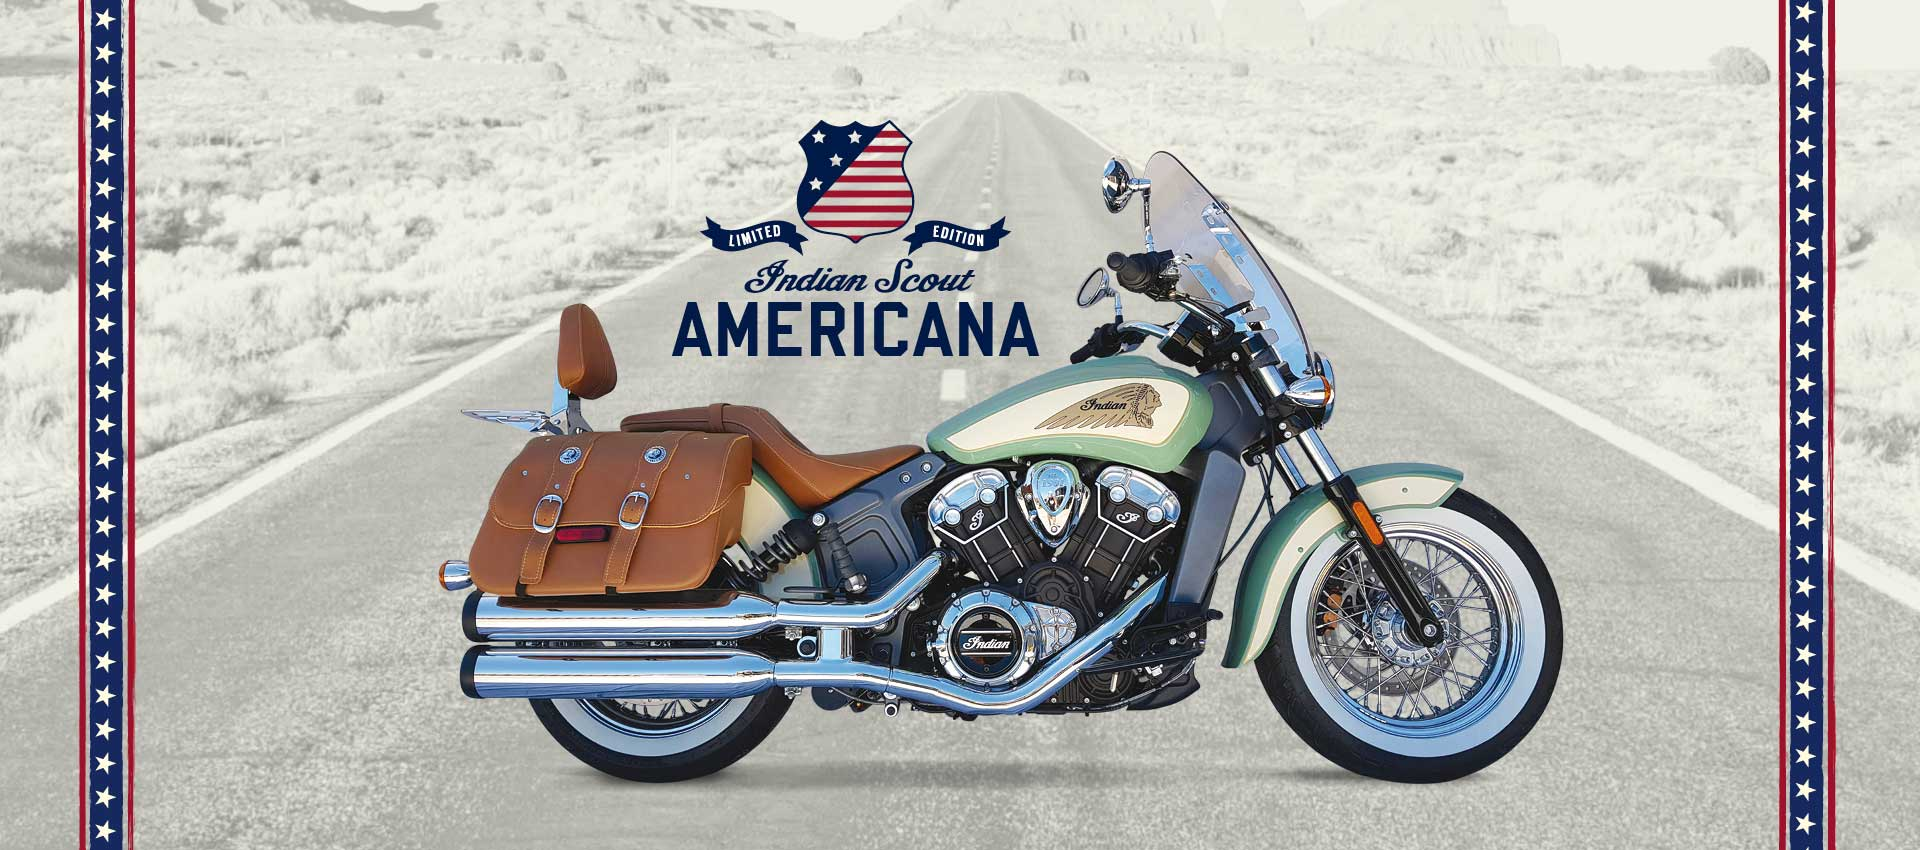 Indian Scout Americana